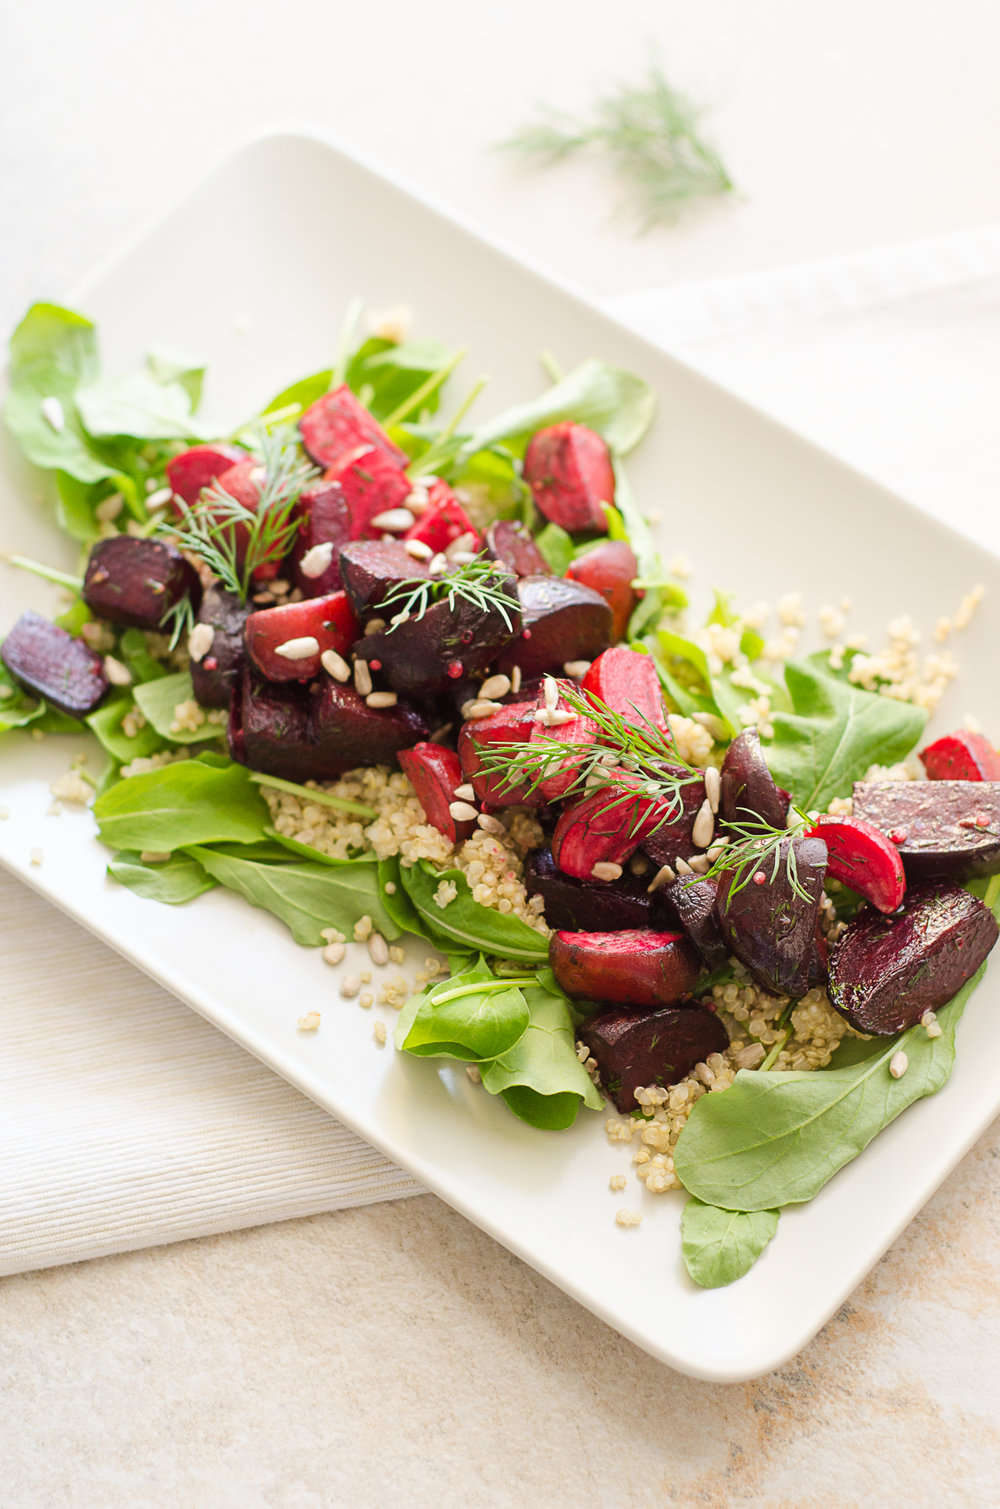 Easy beet summer salad with dill and apple cider vinegar